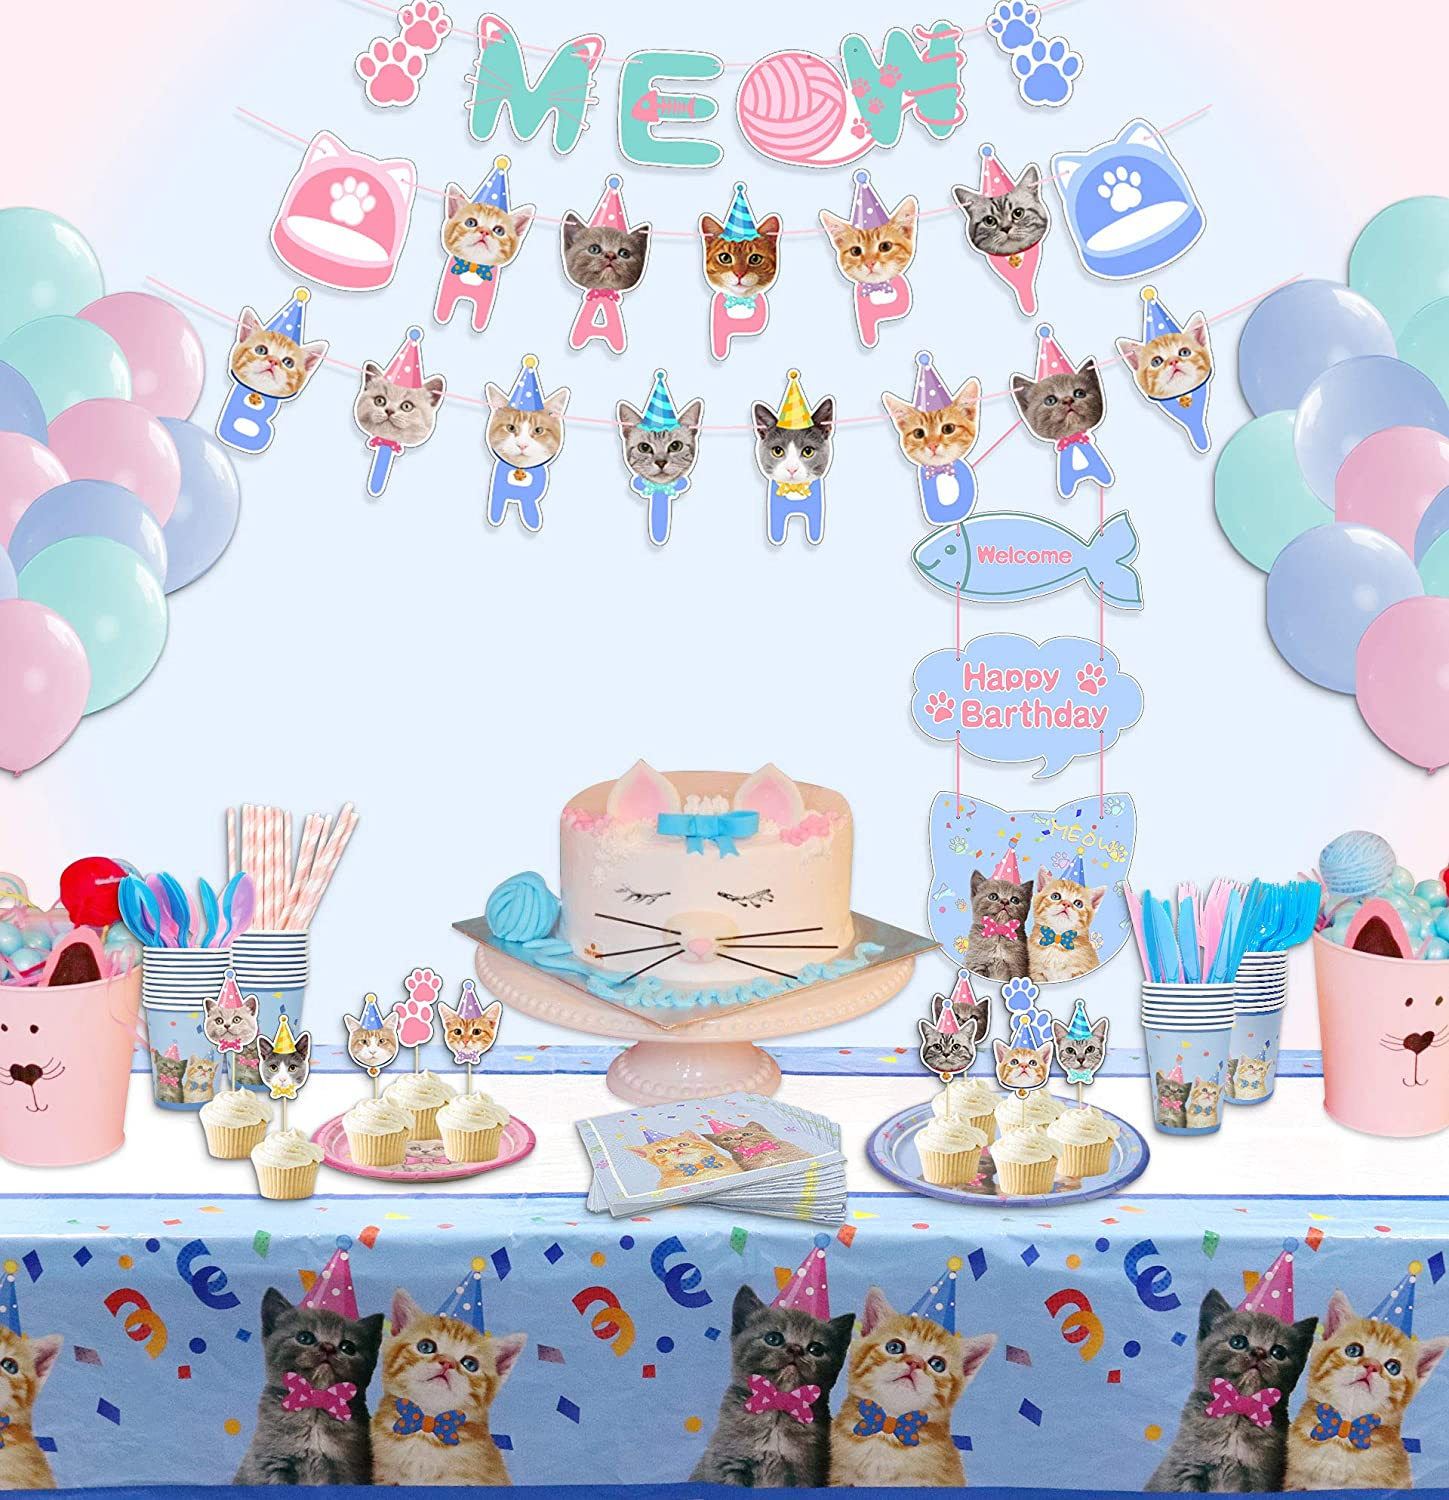 Serves 20 210 Pcs Cat Party Supplies Decorations Set Kitten Disposable Dinnerware Including Happy Birthday Banner Macaron Balloons Dinner Plates Dessert Plates Napkins Cups Cutlery Cupcake Toppers